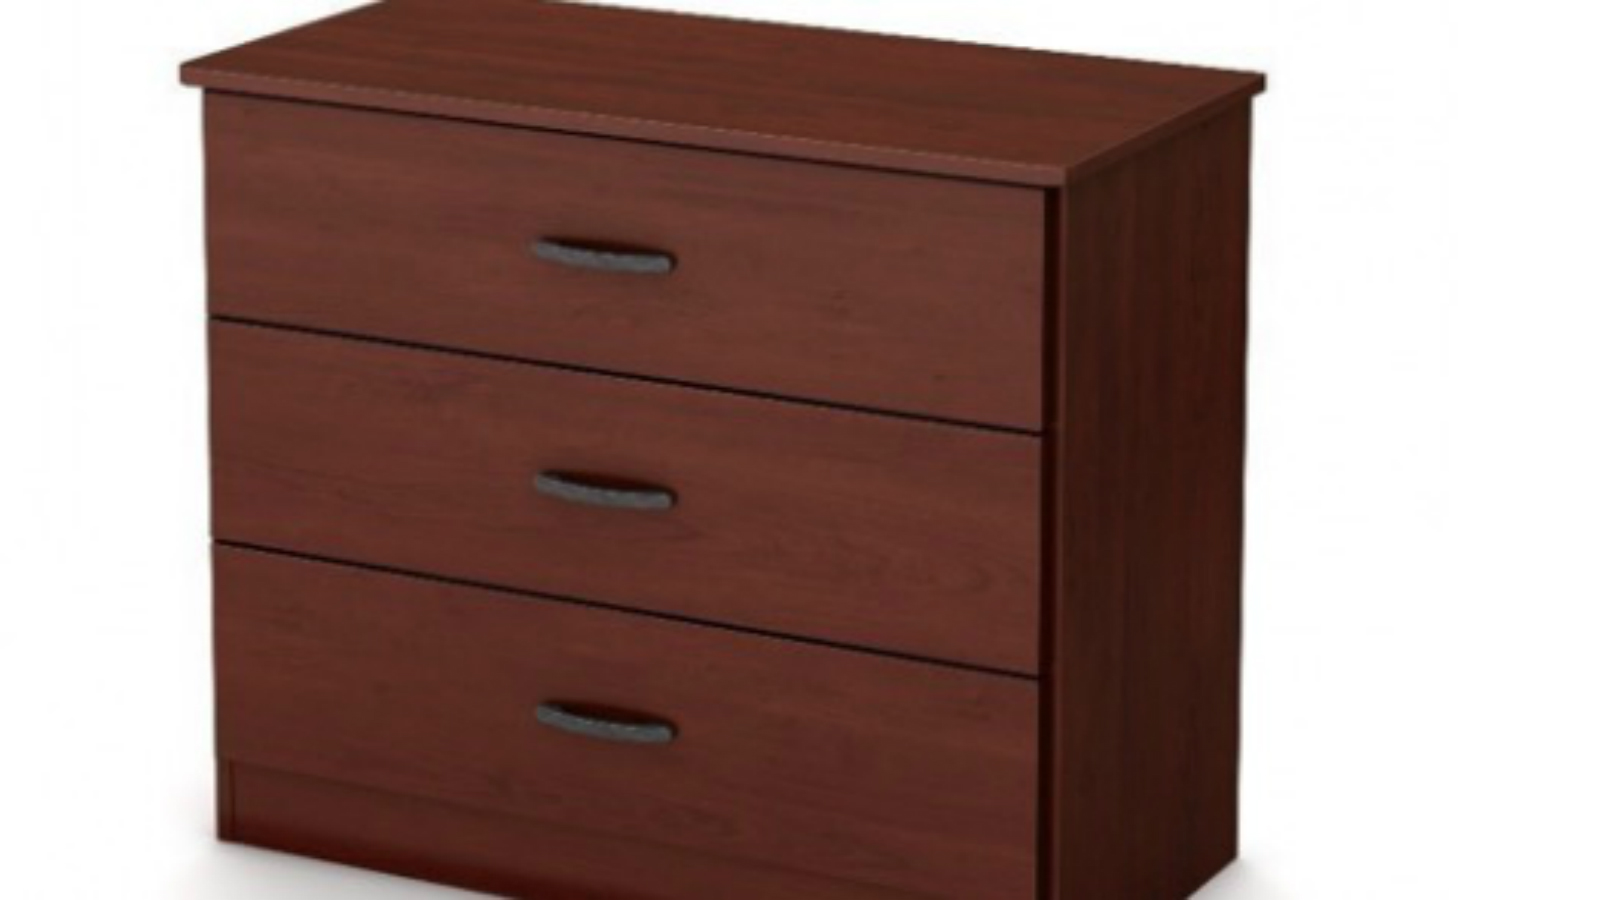 Chest Of Drawers Sold Online By Amazon, Walmart Recalled Over Deadly Tip-Over Risk thumbnail